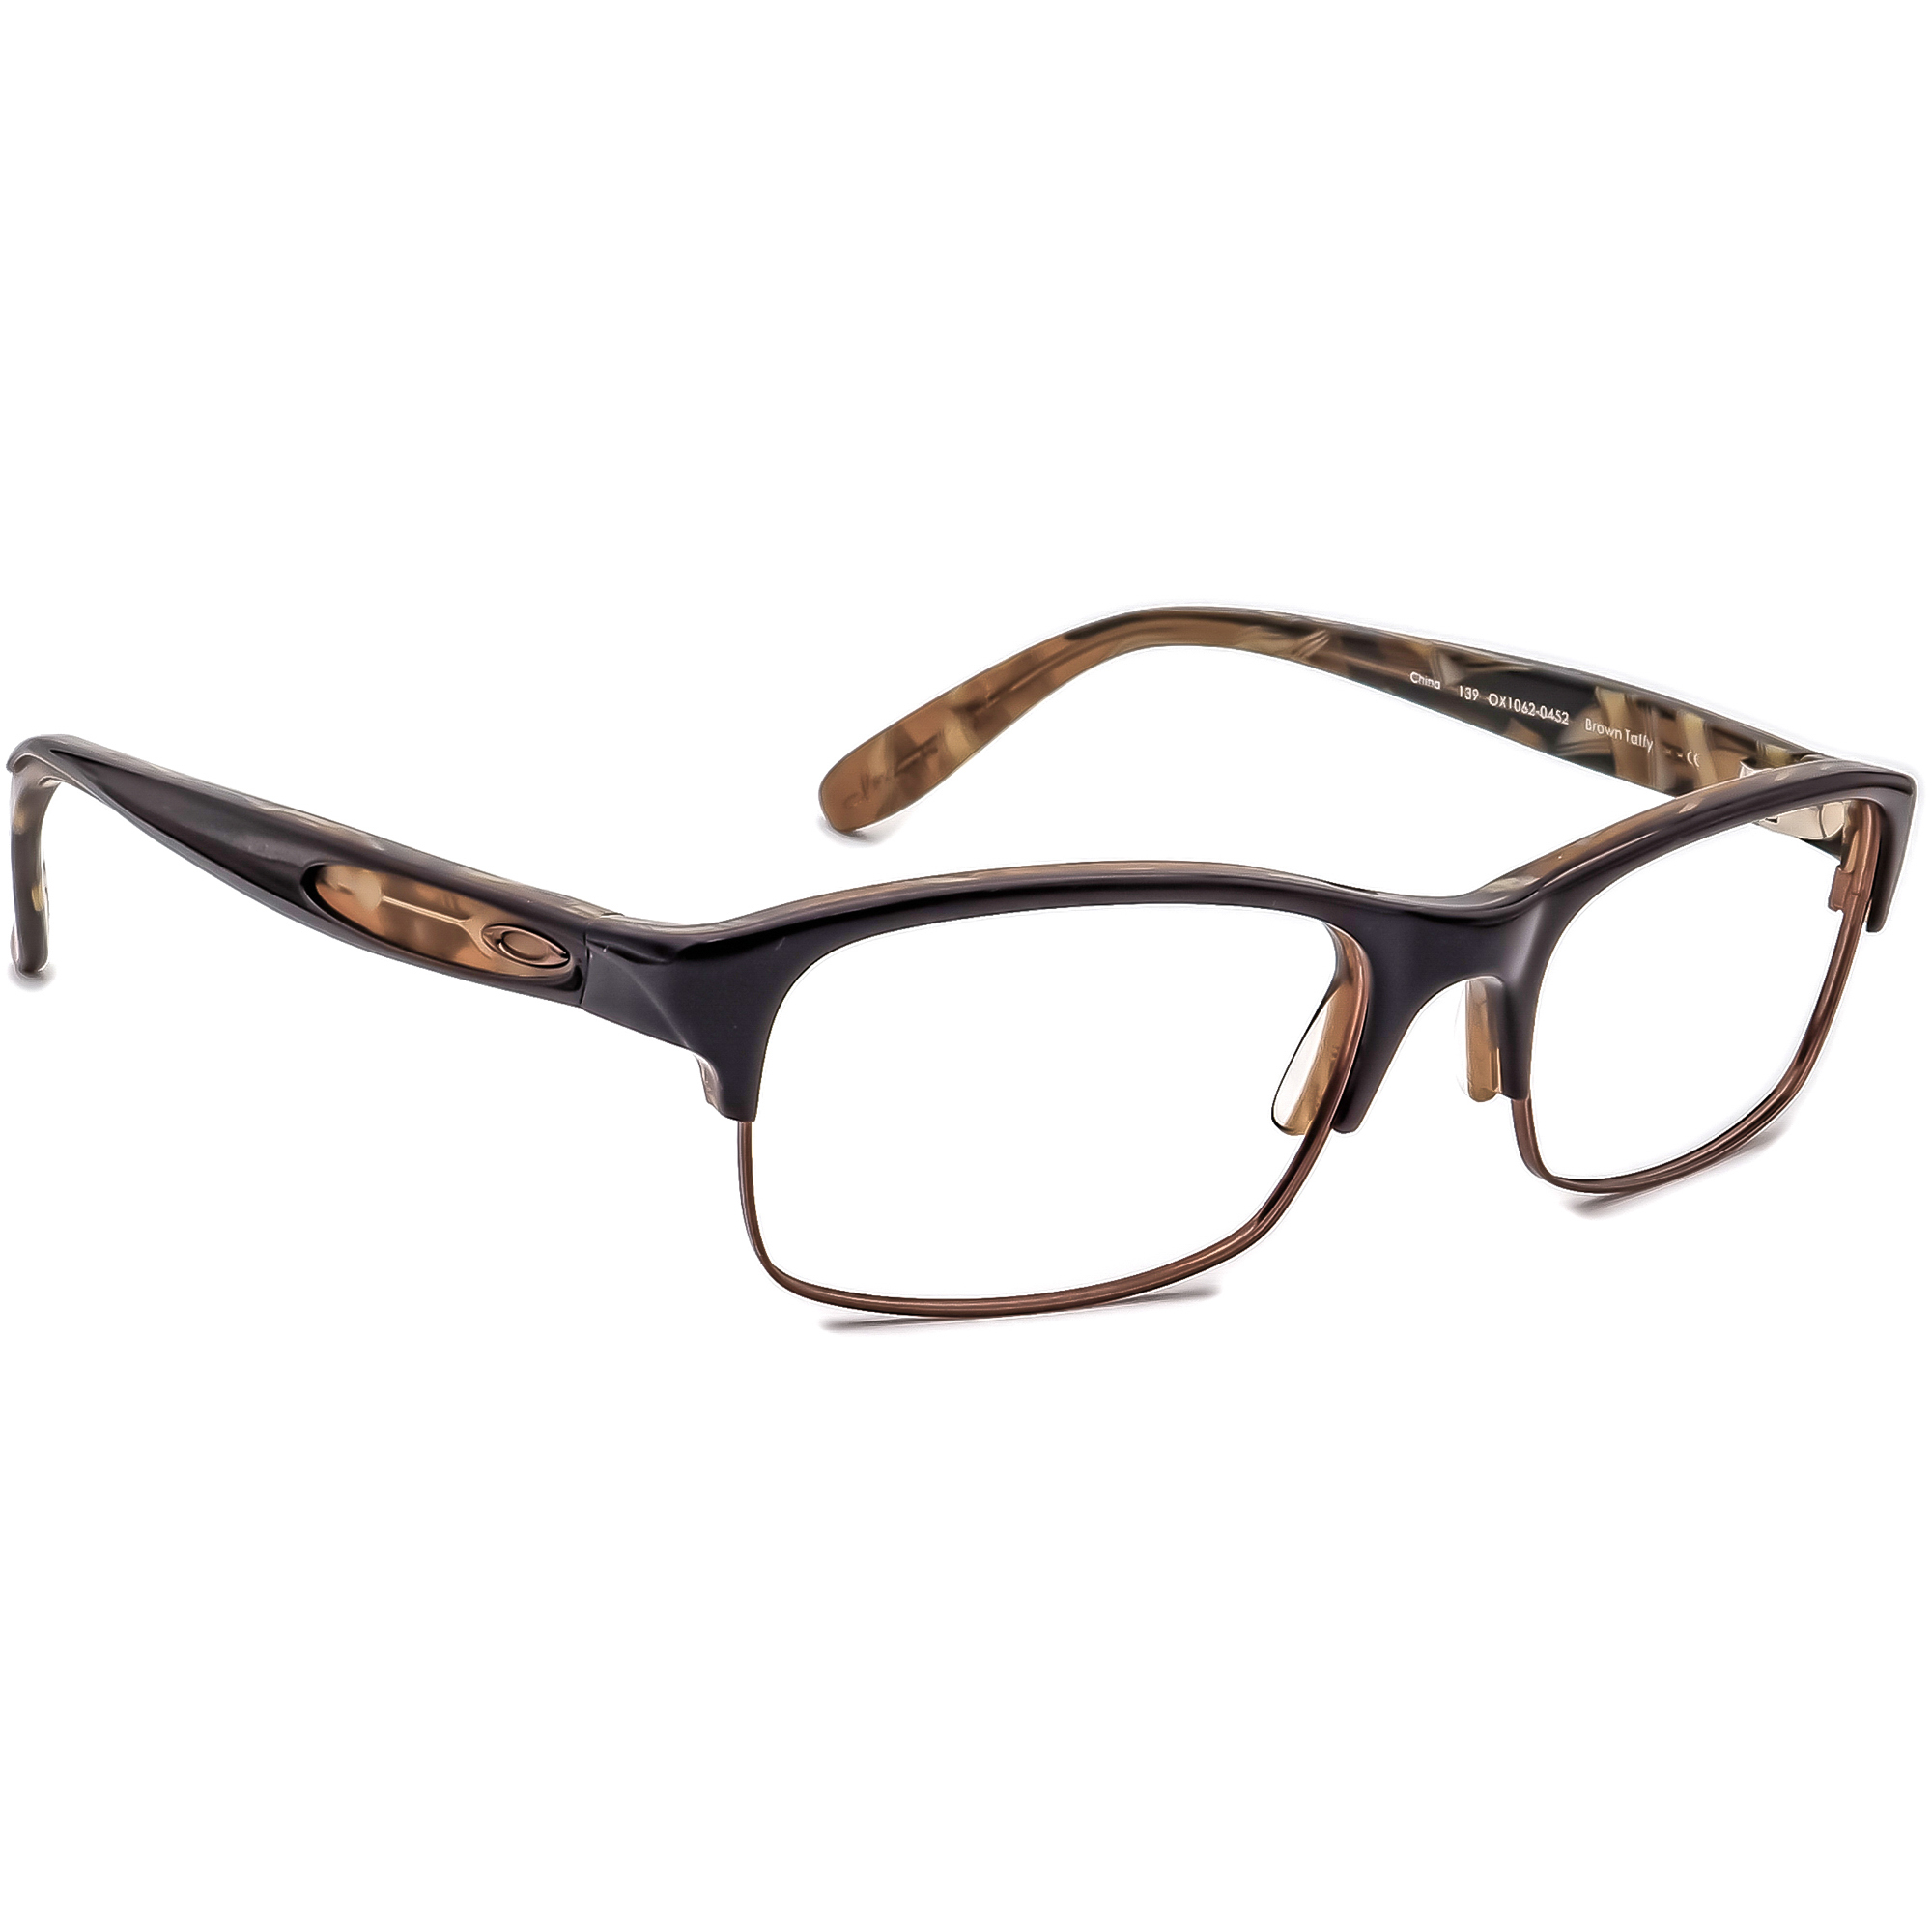 Oakley OX1062-0452 Irreverent Eyeglasses